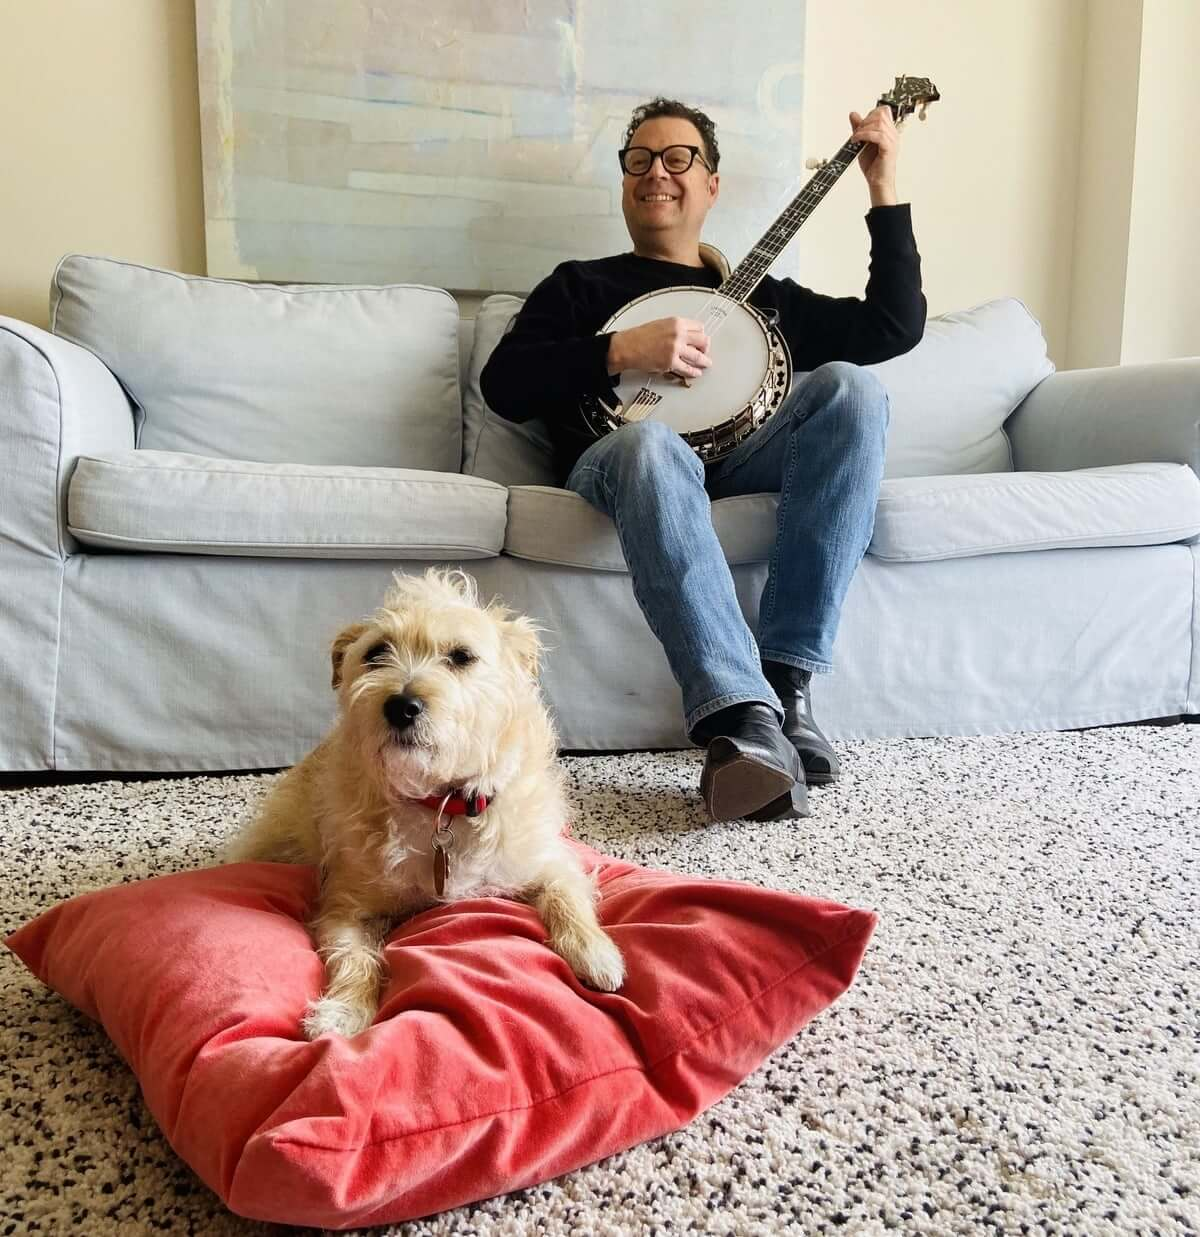 Marco Cera and his dog (Photo courtesy of the artist)